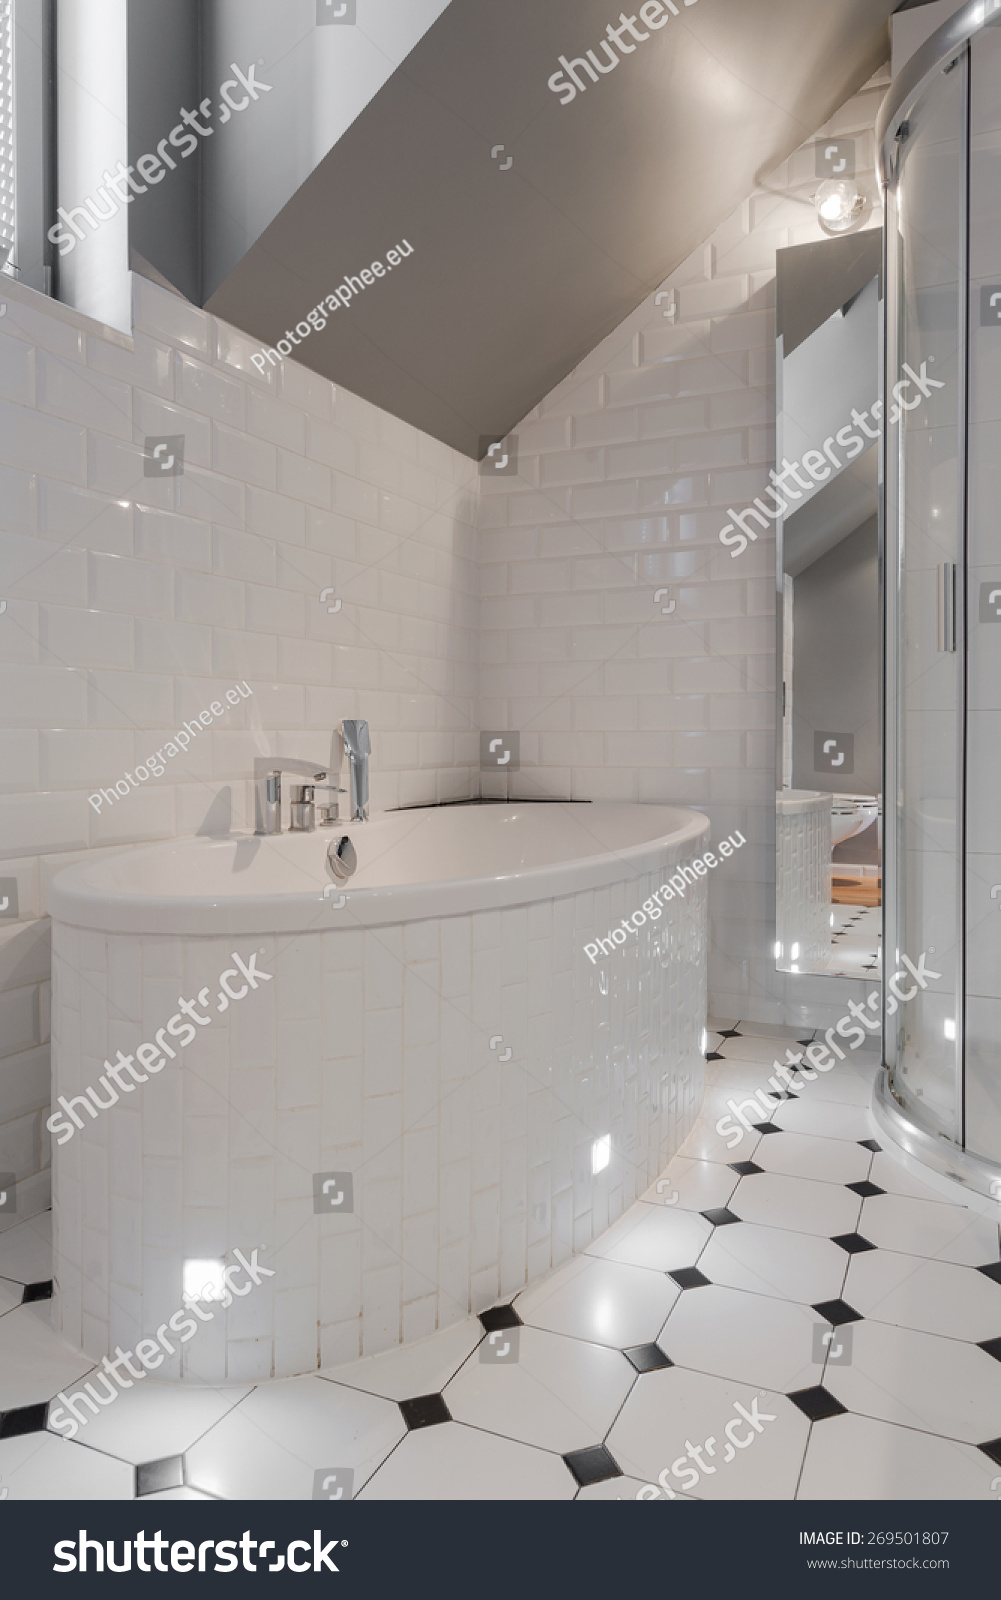 Closeup Porcelain Bathtub White Washroom Stock Photo (Royalty Free ...